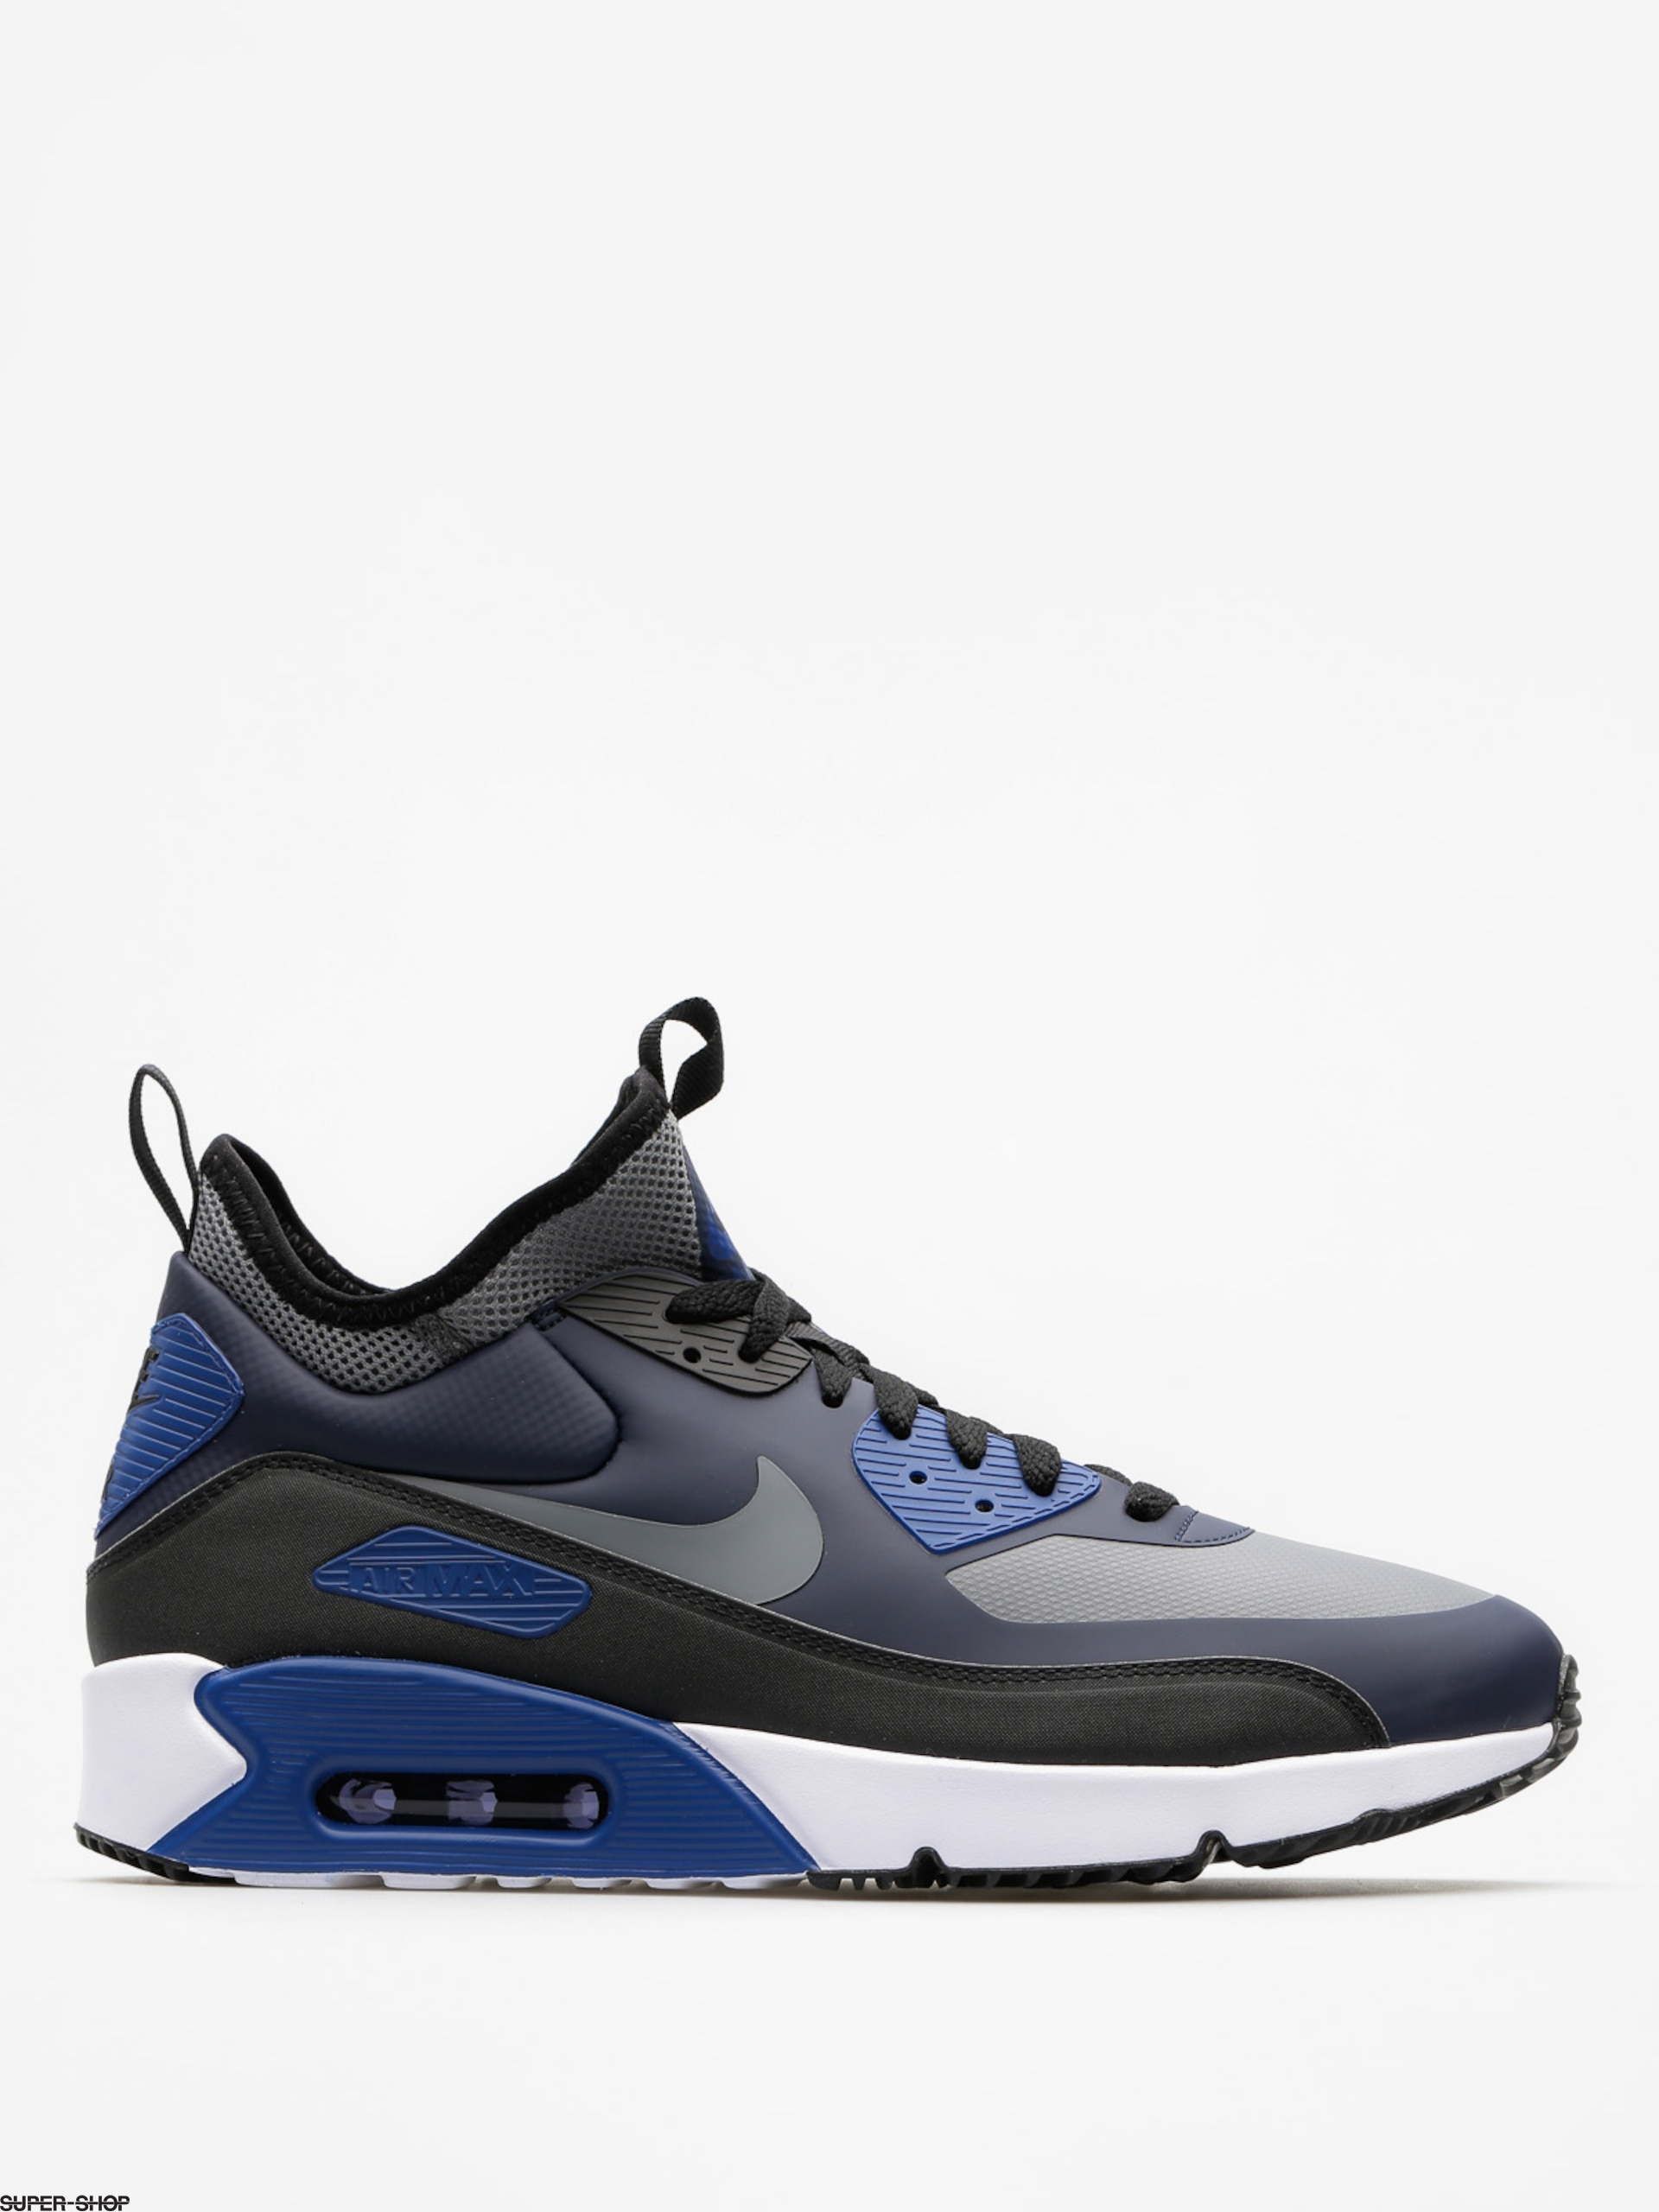 new styles 34522 f2632 nike air max 90 ultra mid winter